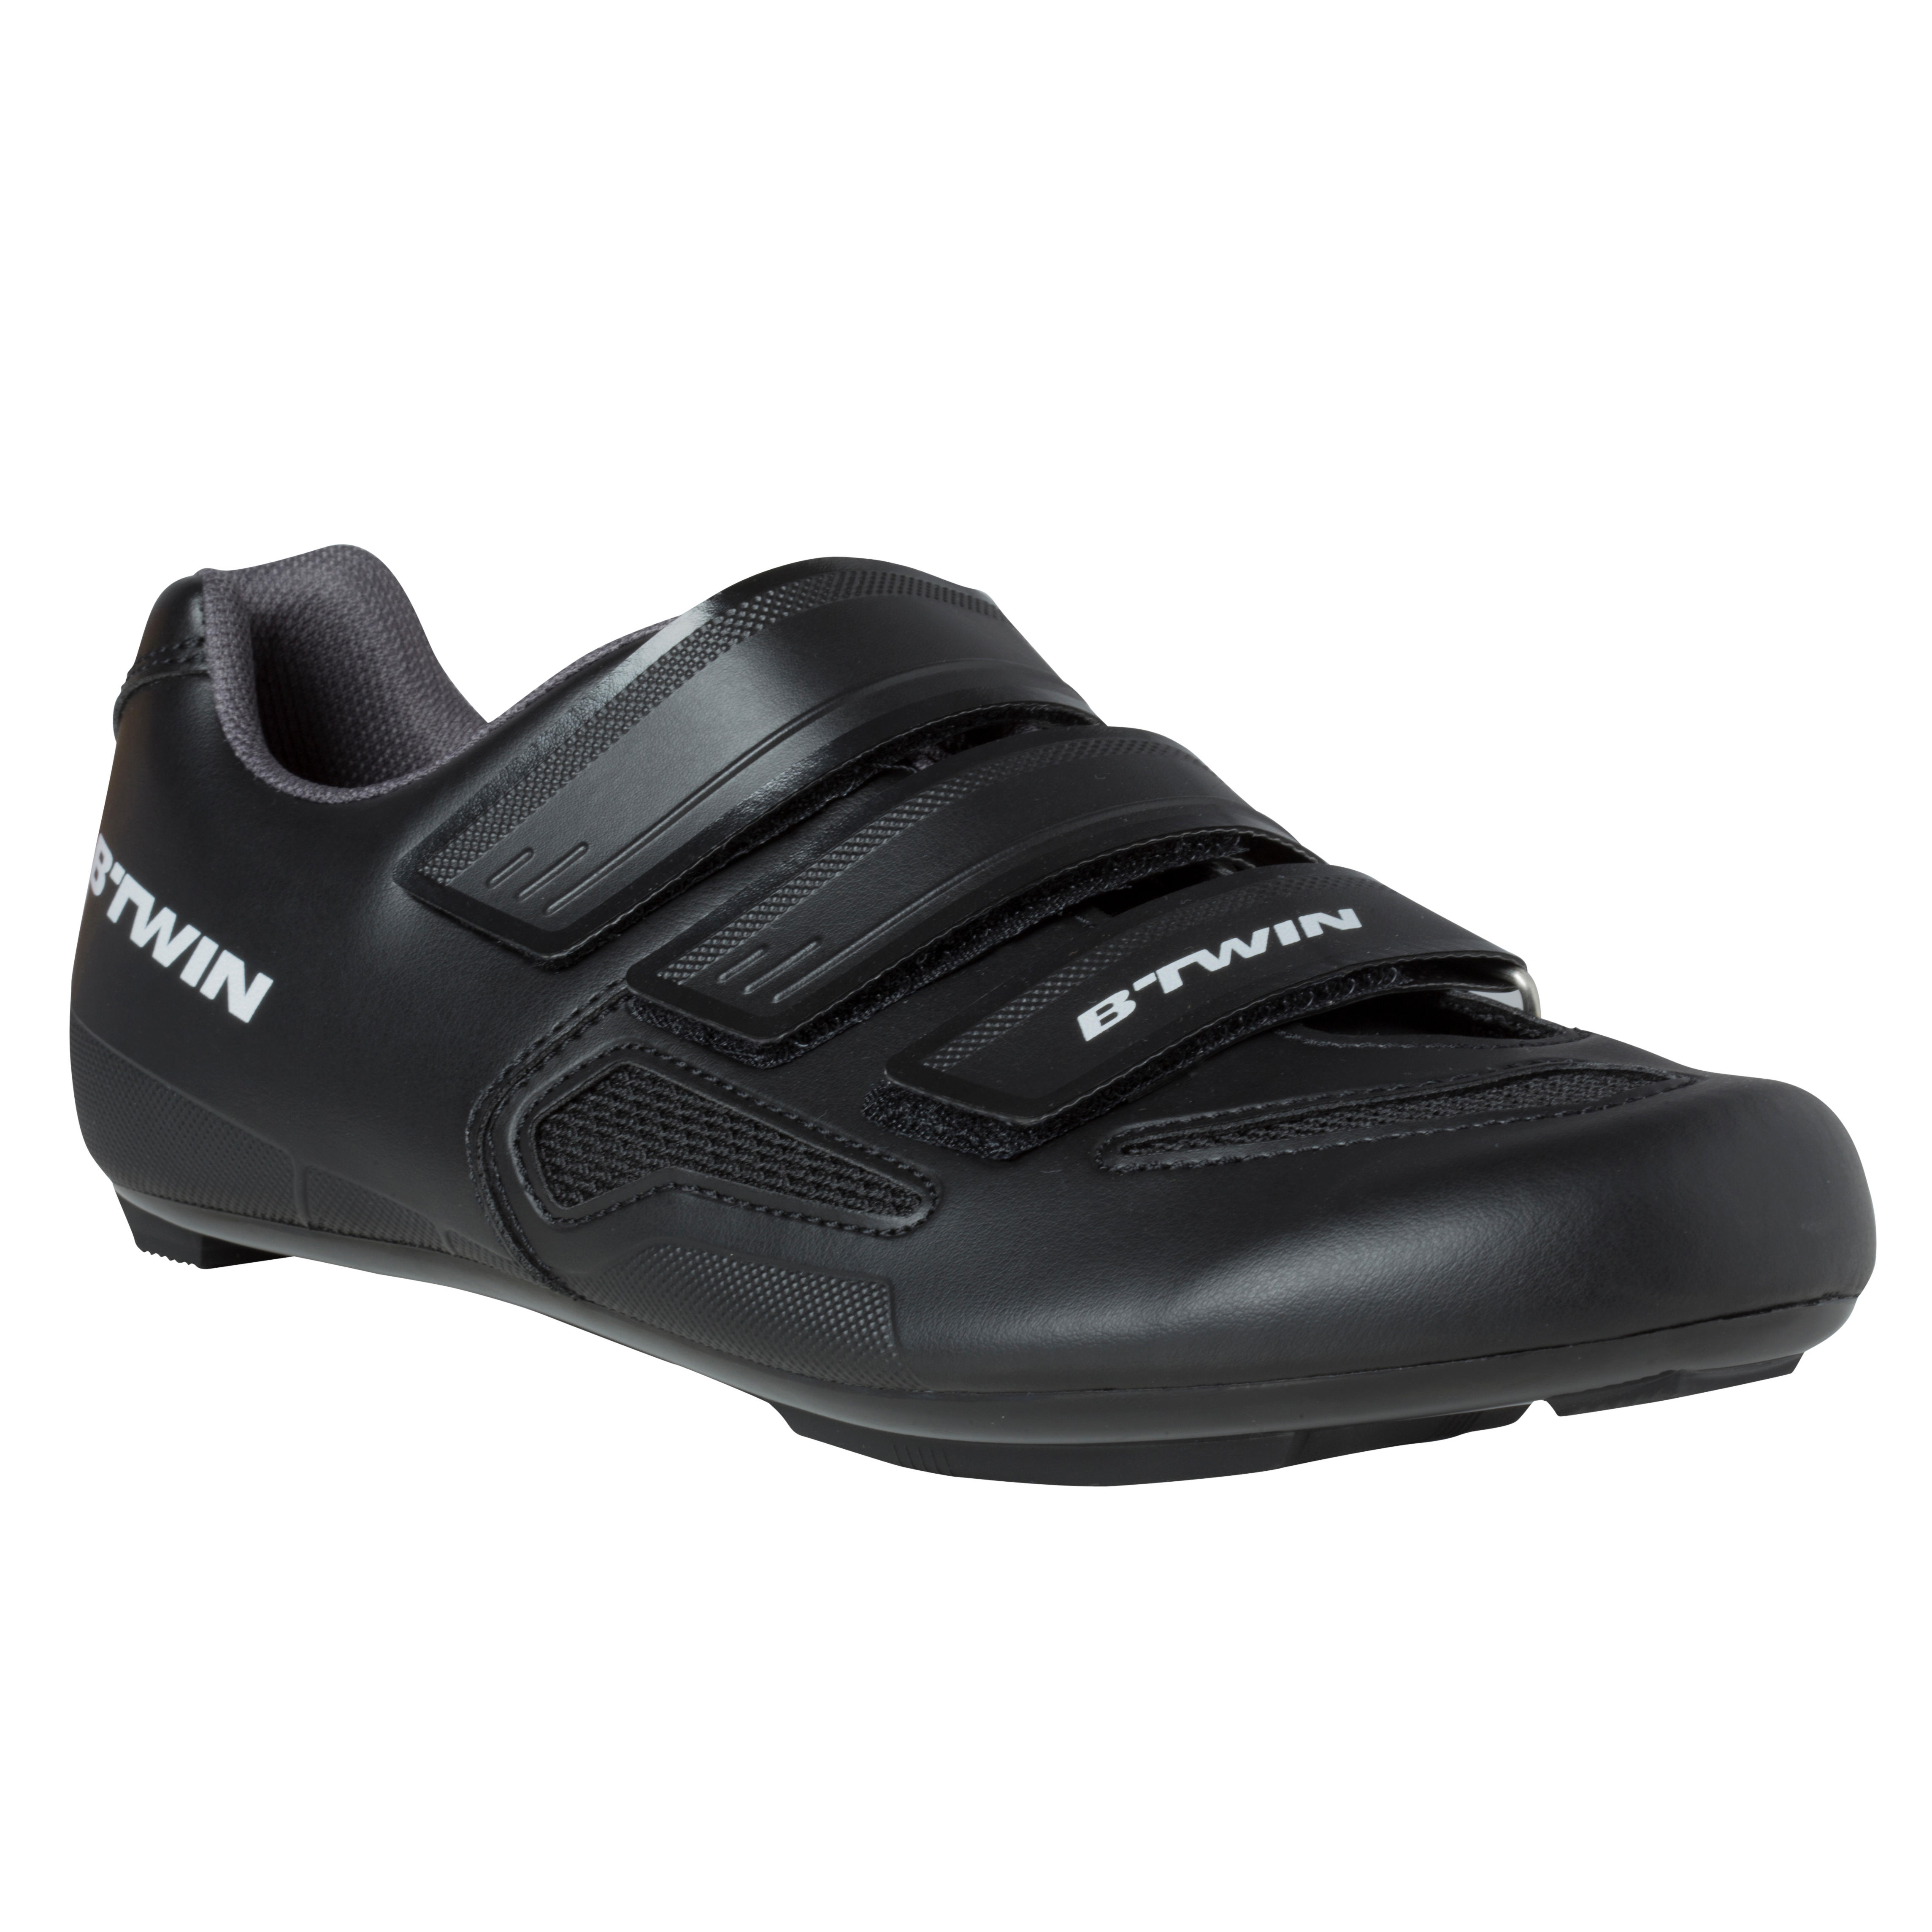 500 Cycling Shoes -...